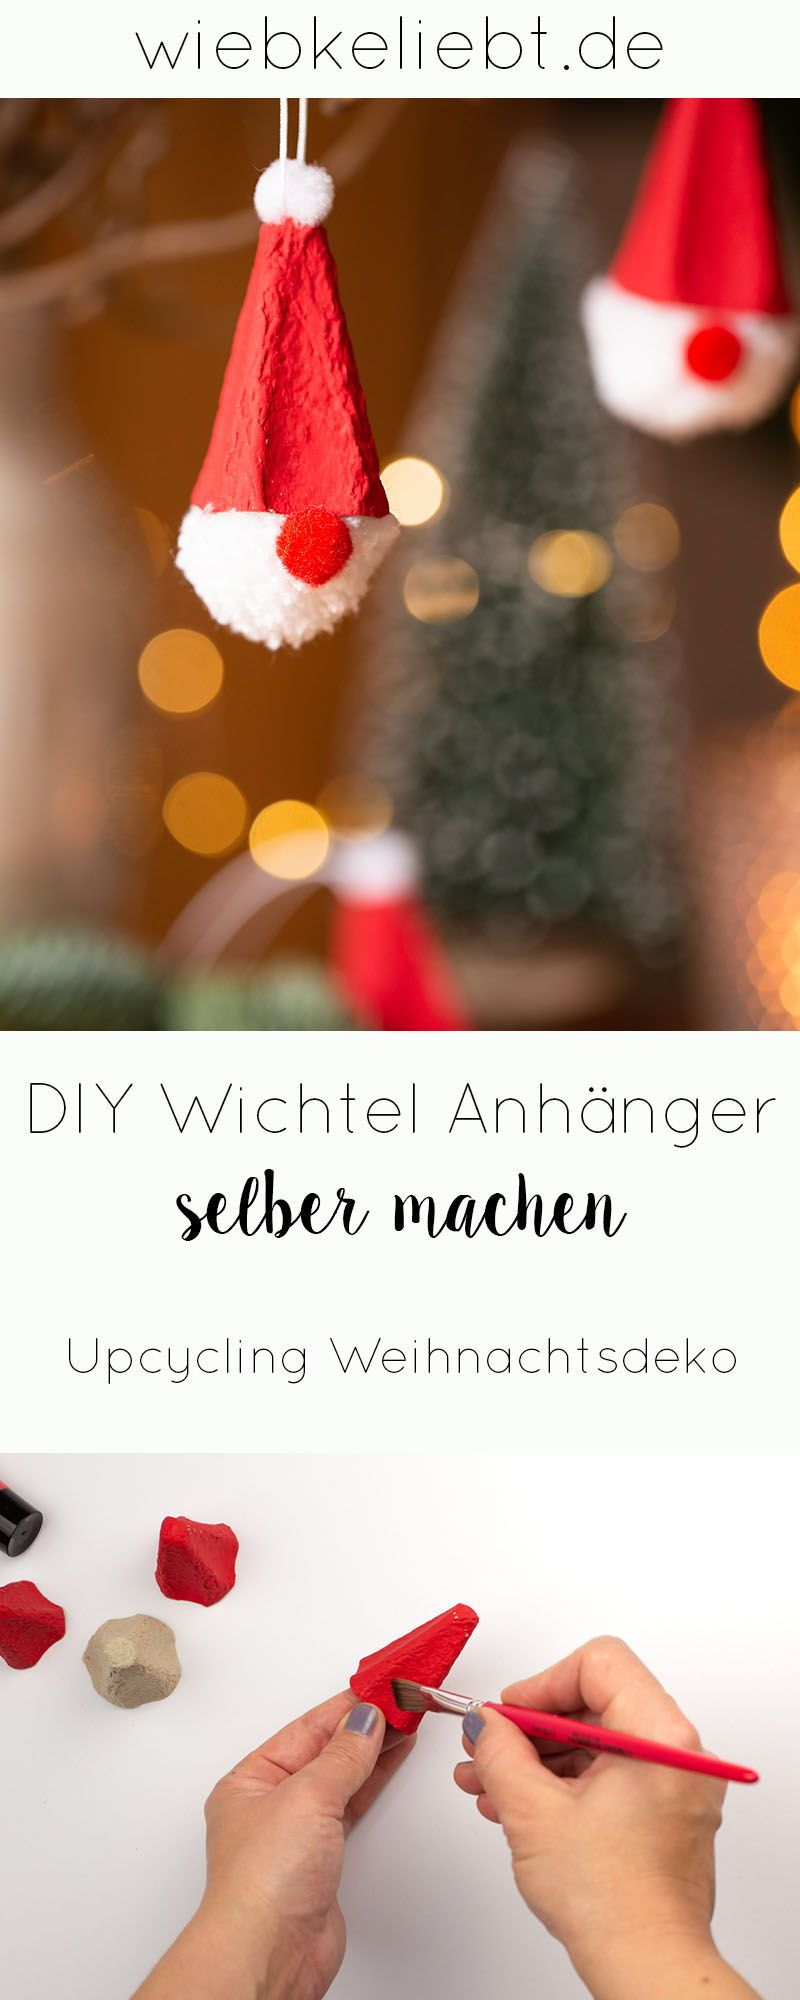 DIY Blog | Do-it-yourself Anleitungen zum Selbermachen | Wiebkeliebt |